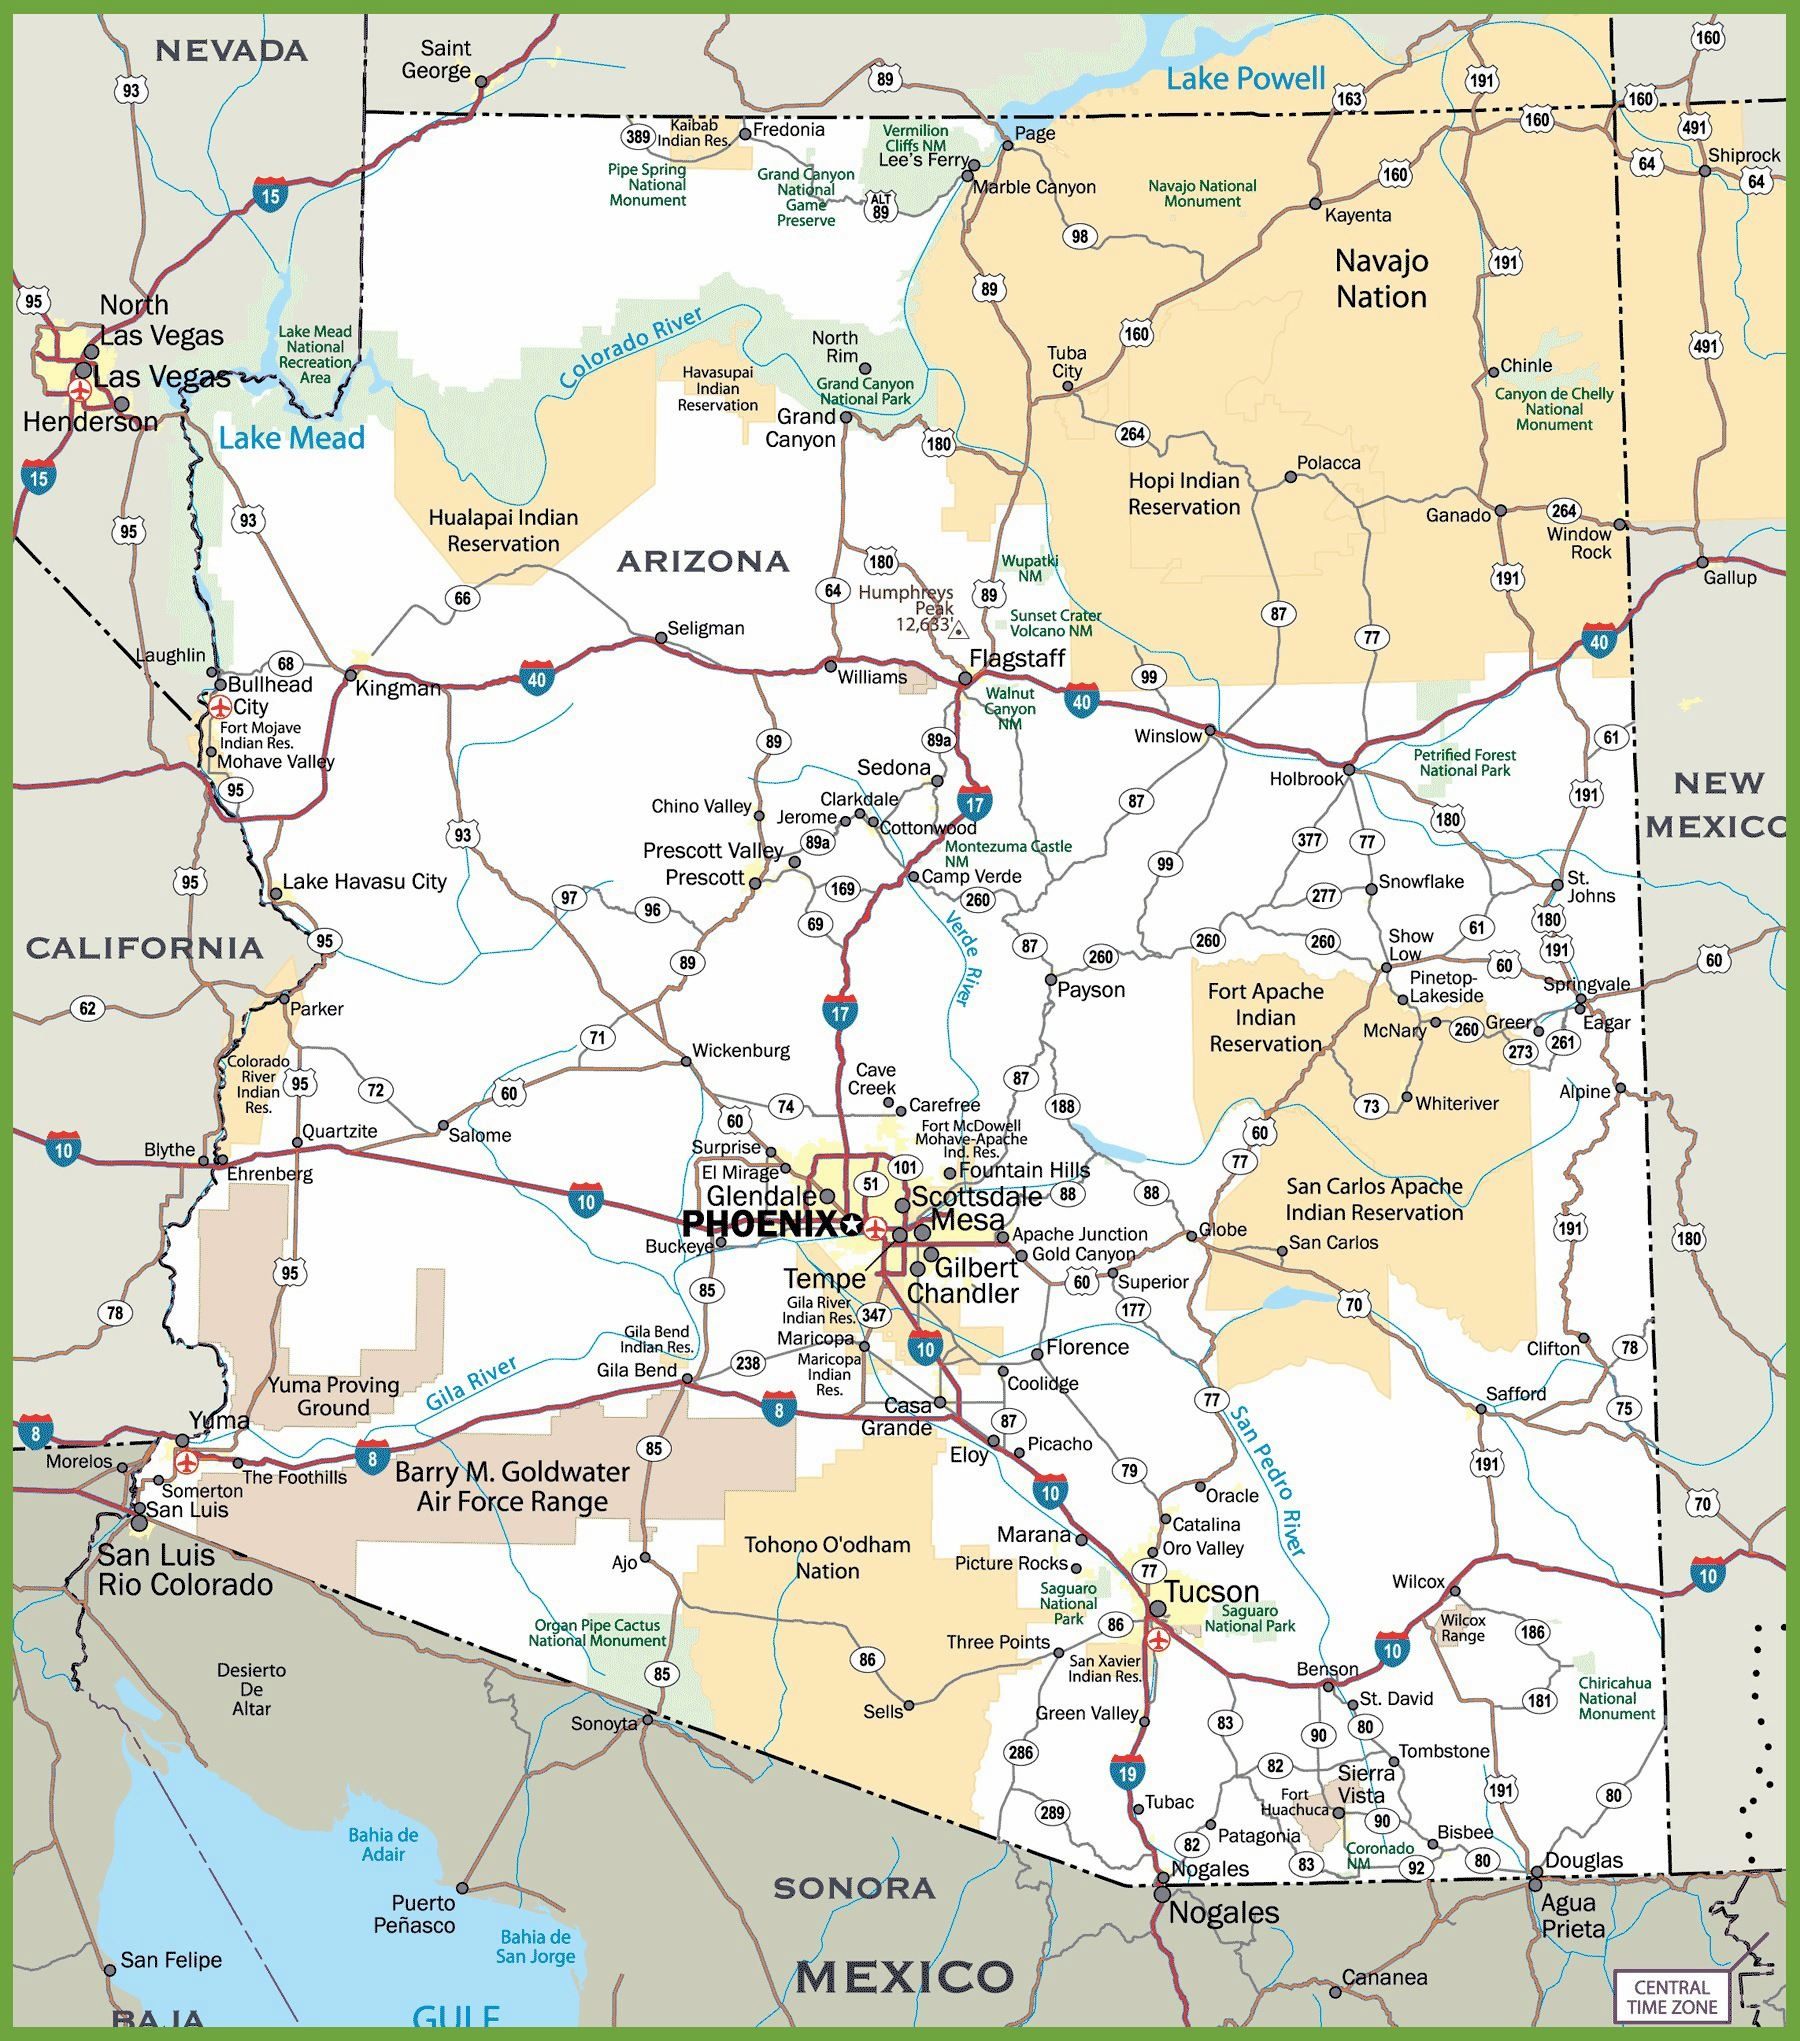 Large Arizona Maps For Free Download And Print | High-Resolution And - Free Printable Map Of Arizona